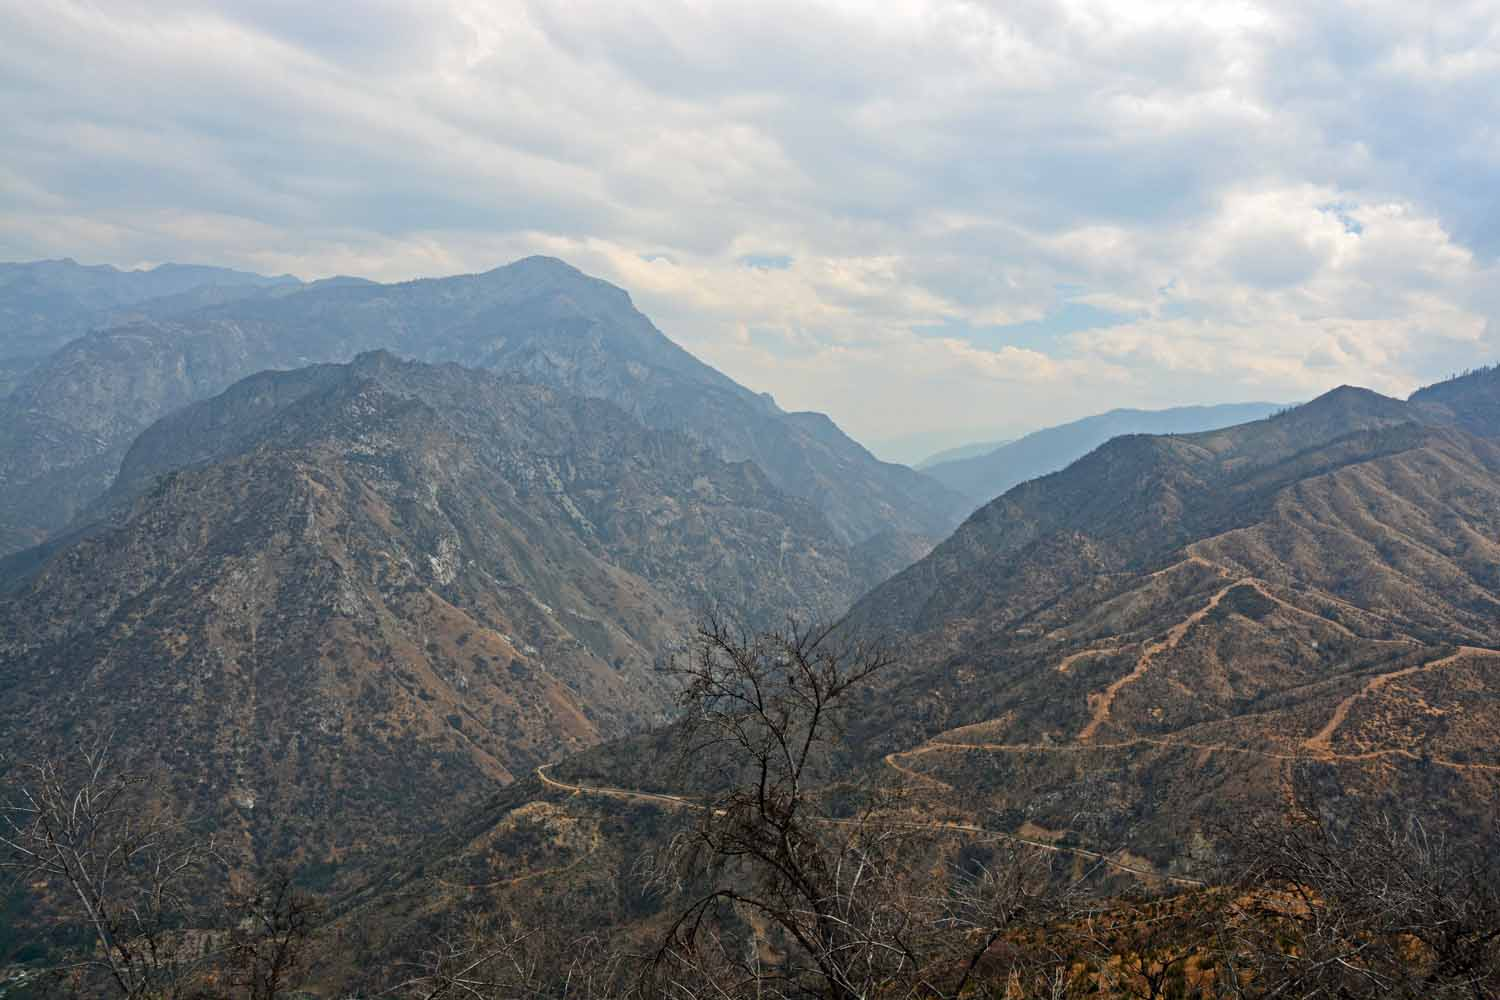 I liked this perspective.  You can see the haze from the California fires which gives the distance views a certain soften edge.